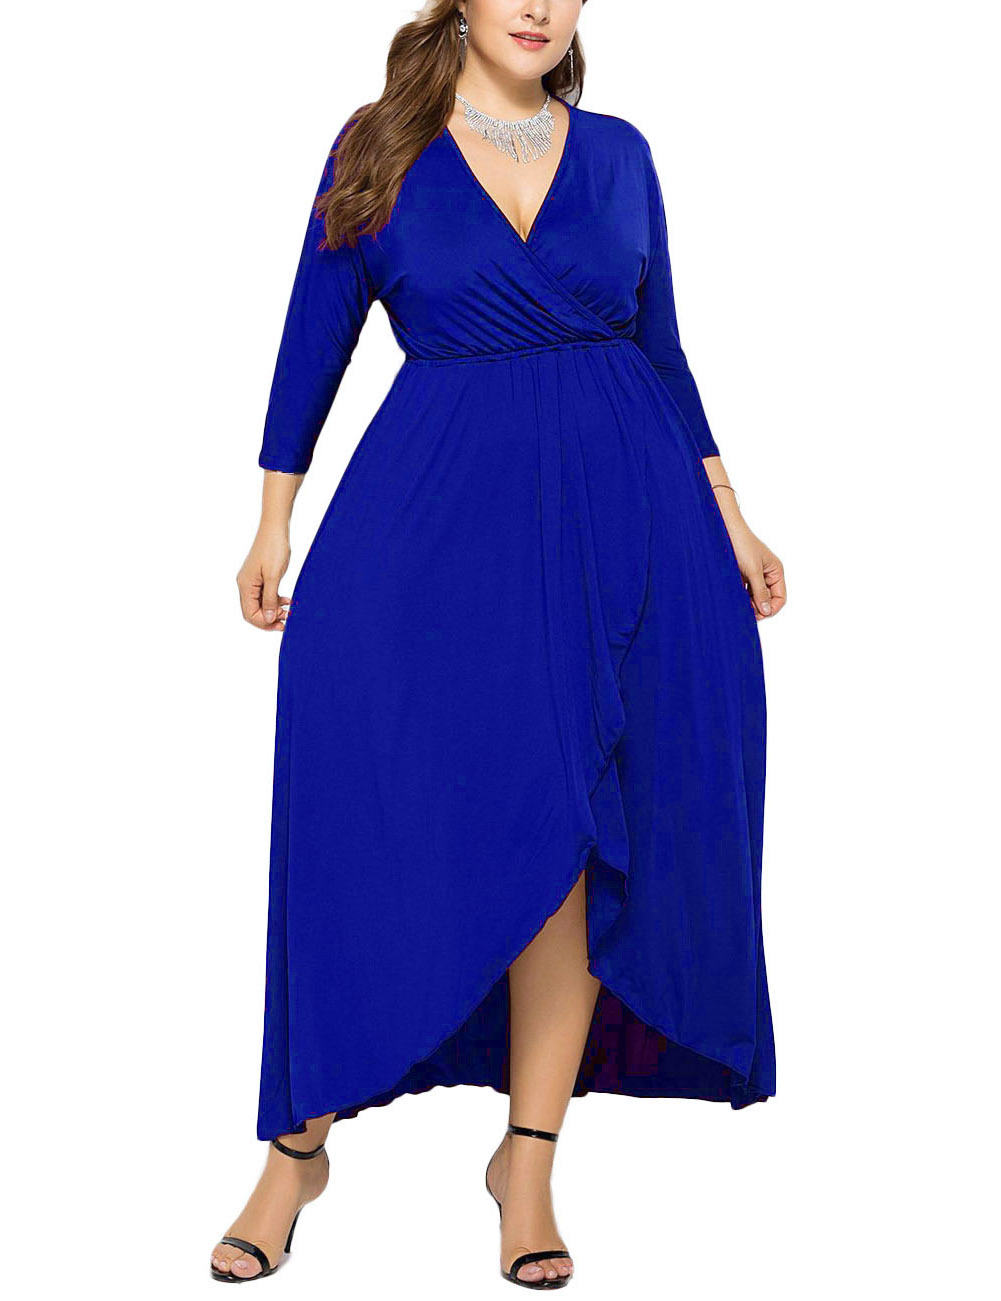 //cdn.affectcloud.com/feelingirldress/upload/imgs/2019-07-31/VZ191088-BU5/VZ191088-BU5-5.jpg